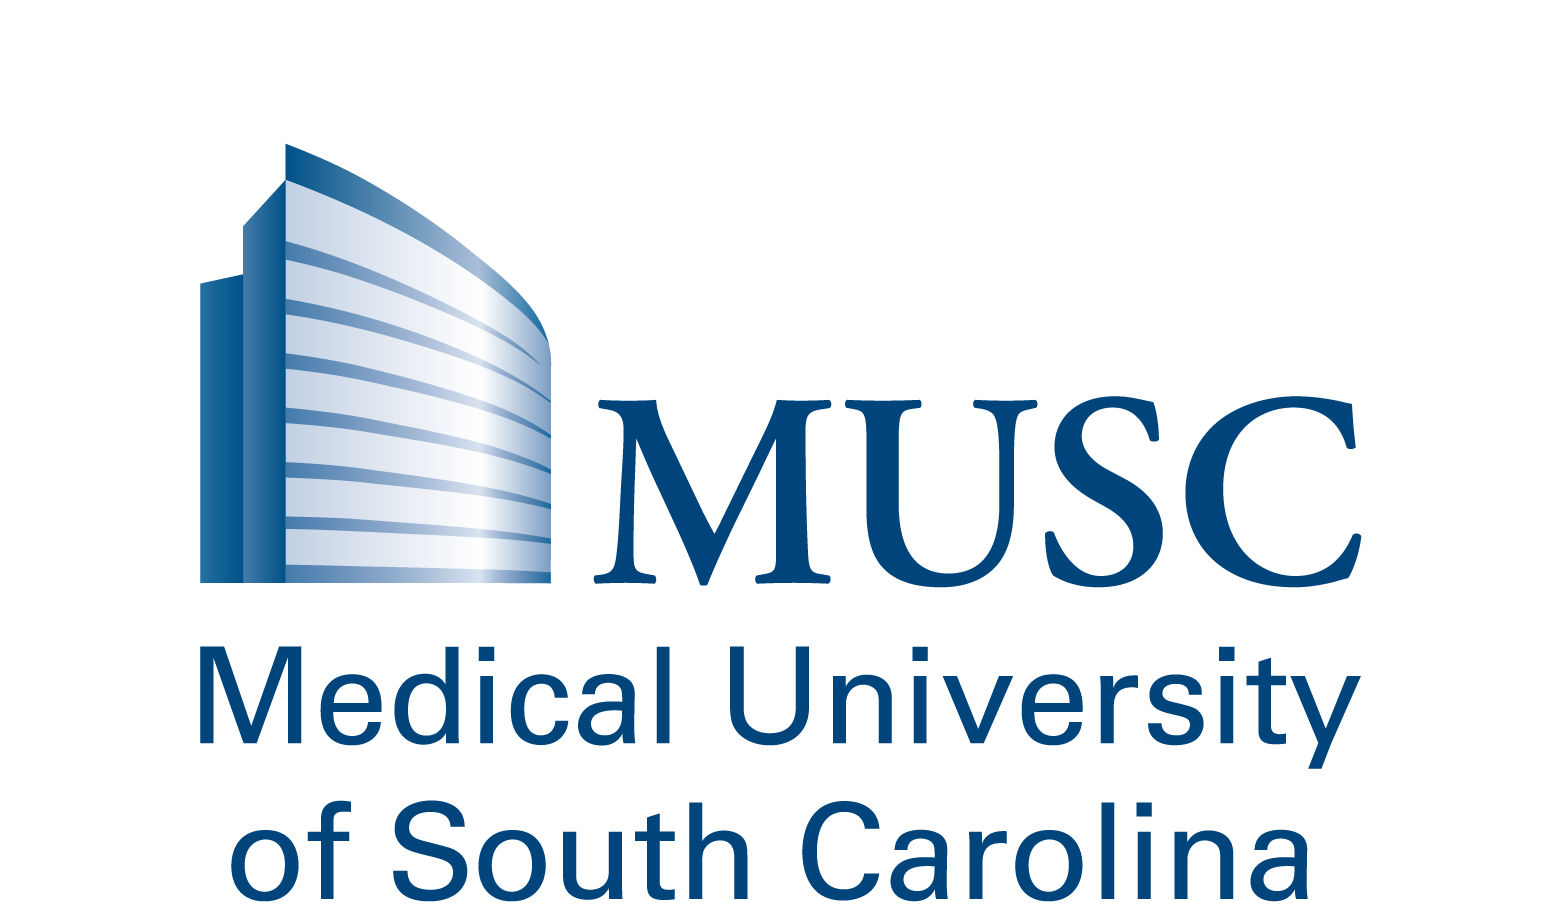 MUSC_TAG_00447c